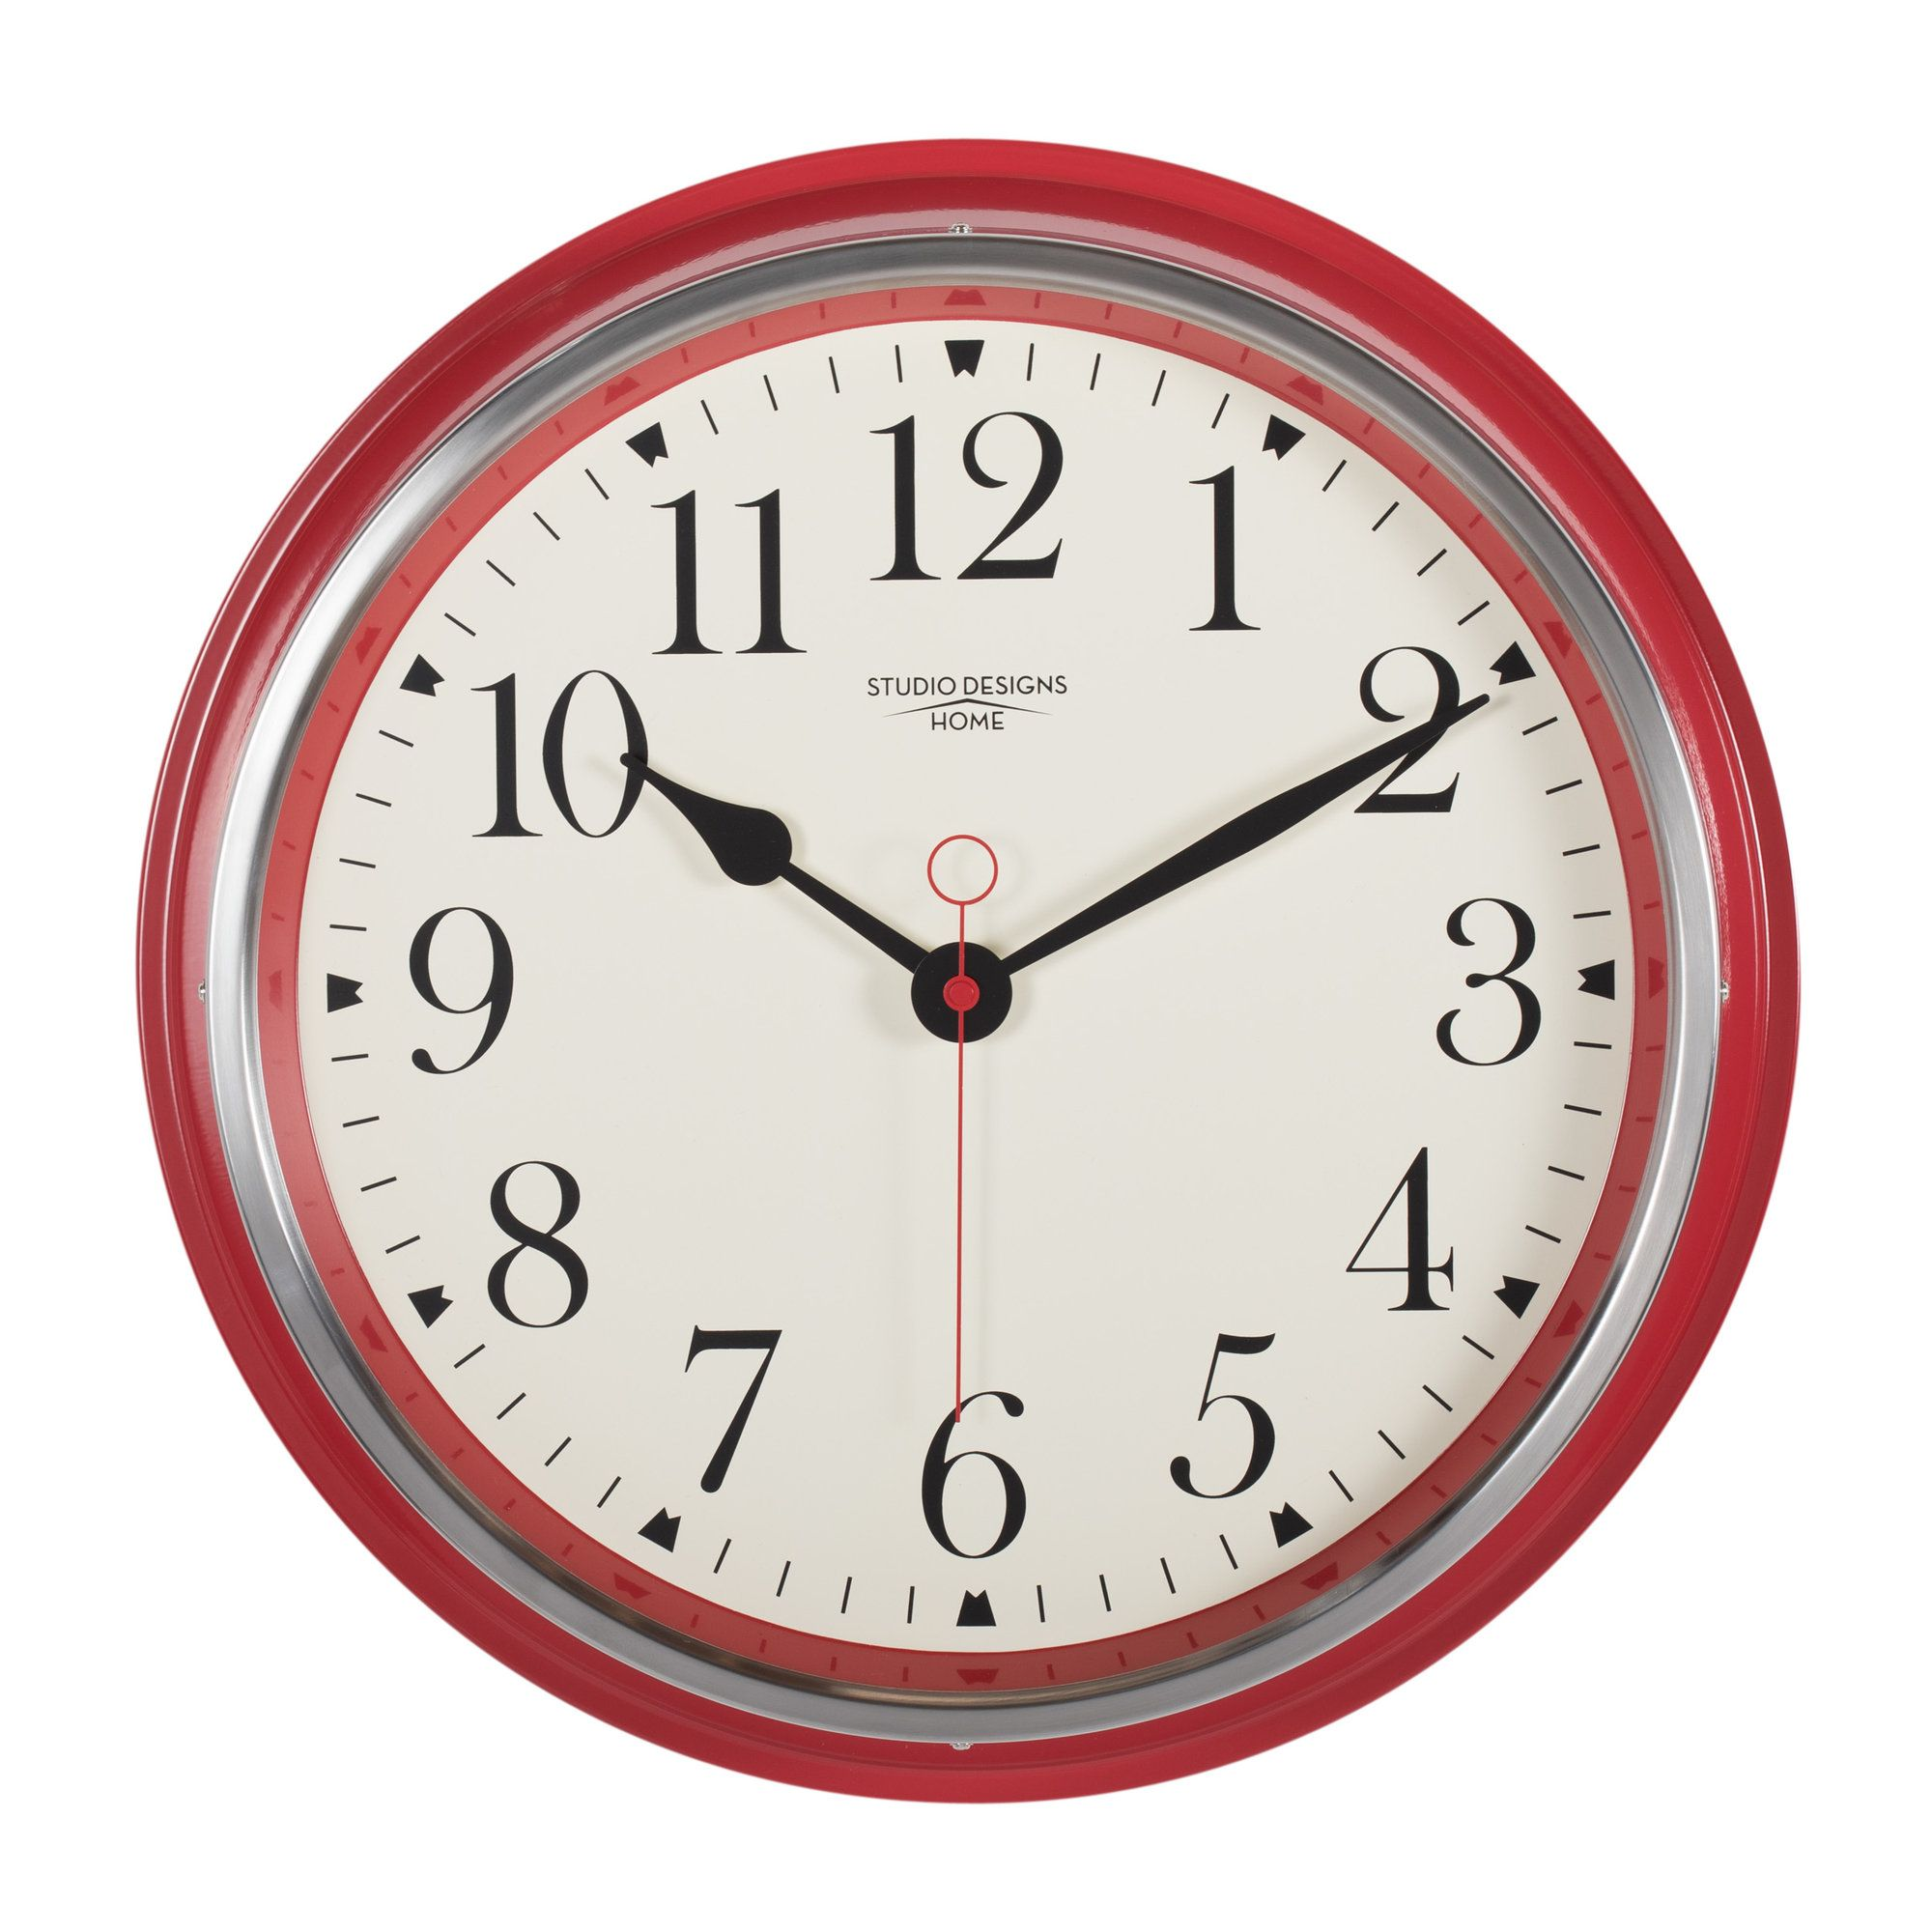 Analog Vintage Metal Wall Clock | Clock, Red wall clock ...